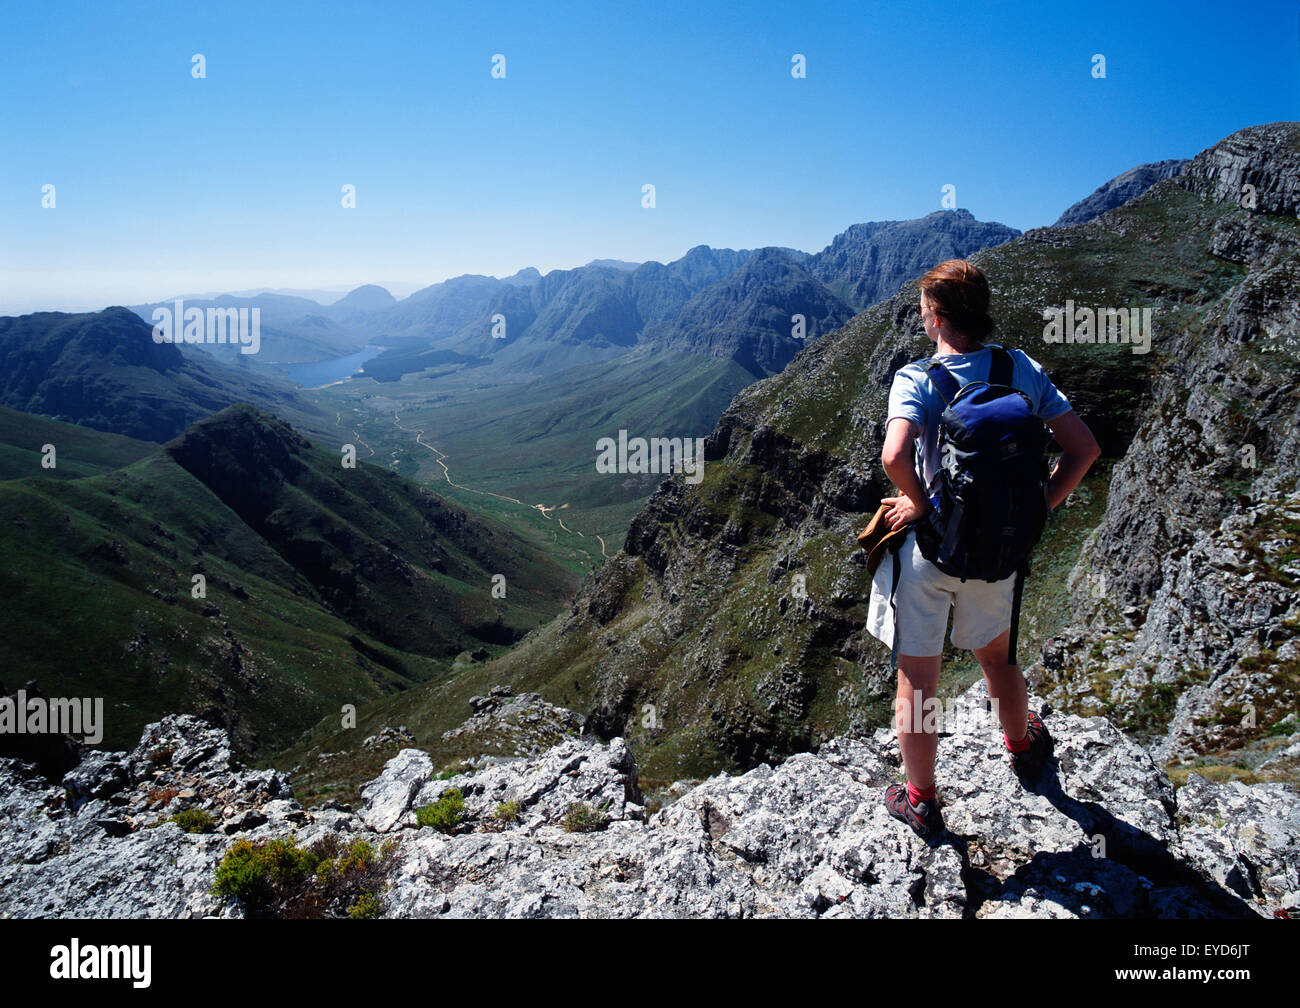 A Man With A Backpack Stands On A Mountain Ridge Looking Out Over The Valley And Range - Stock Image